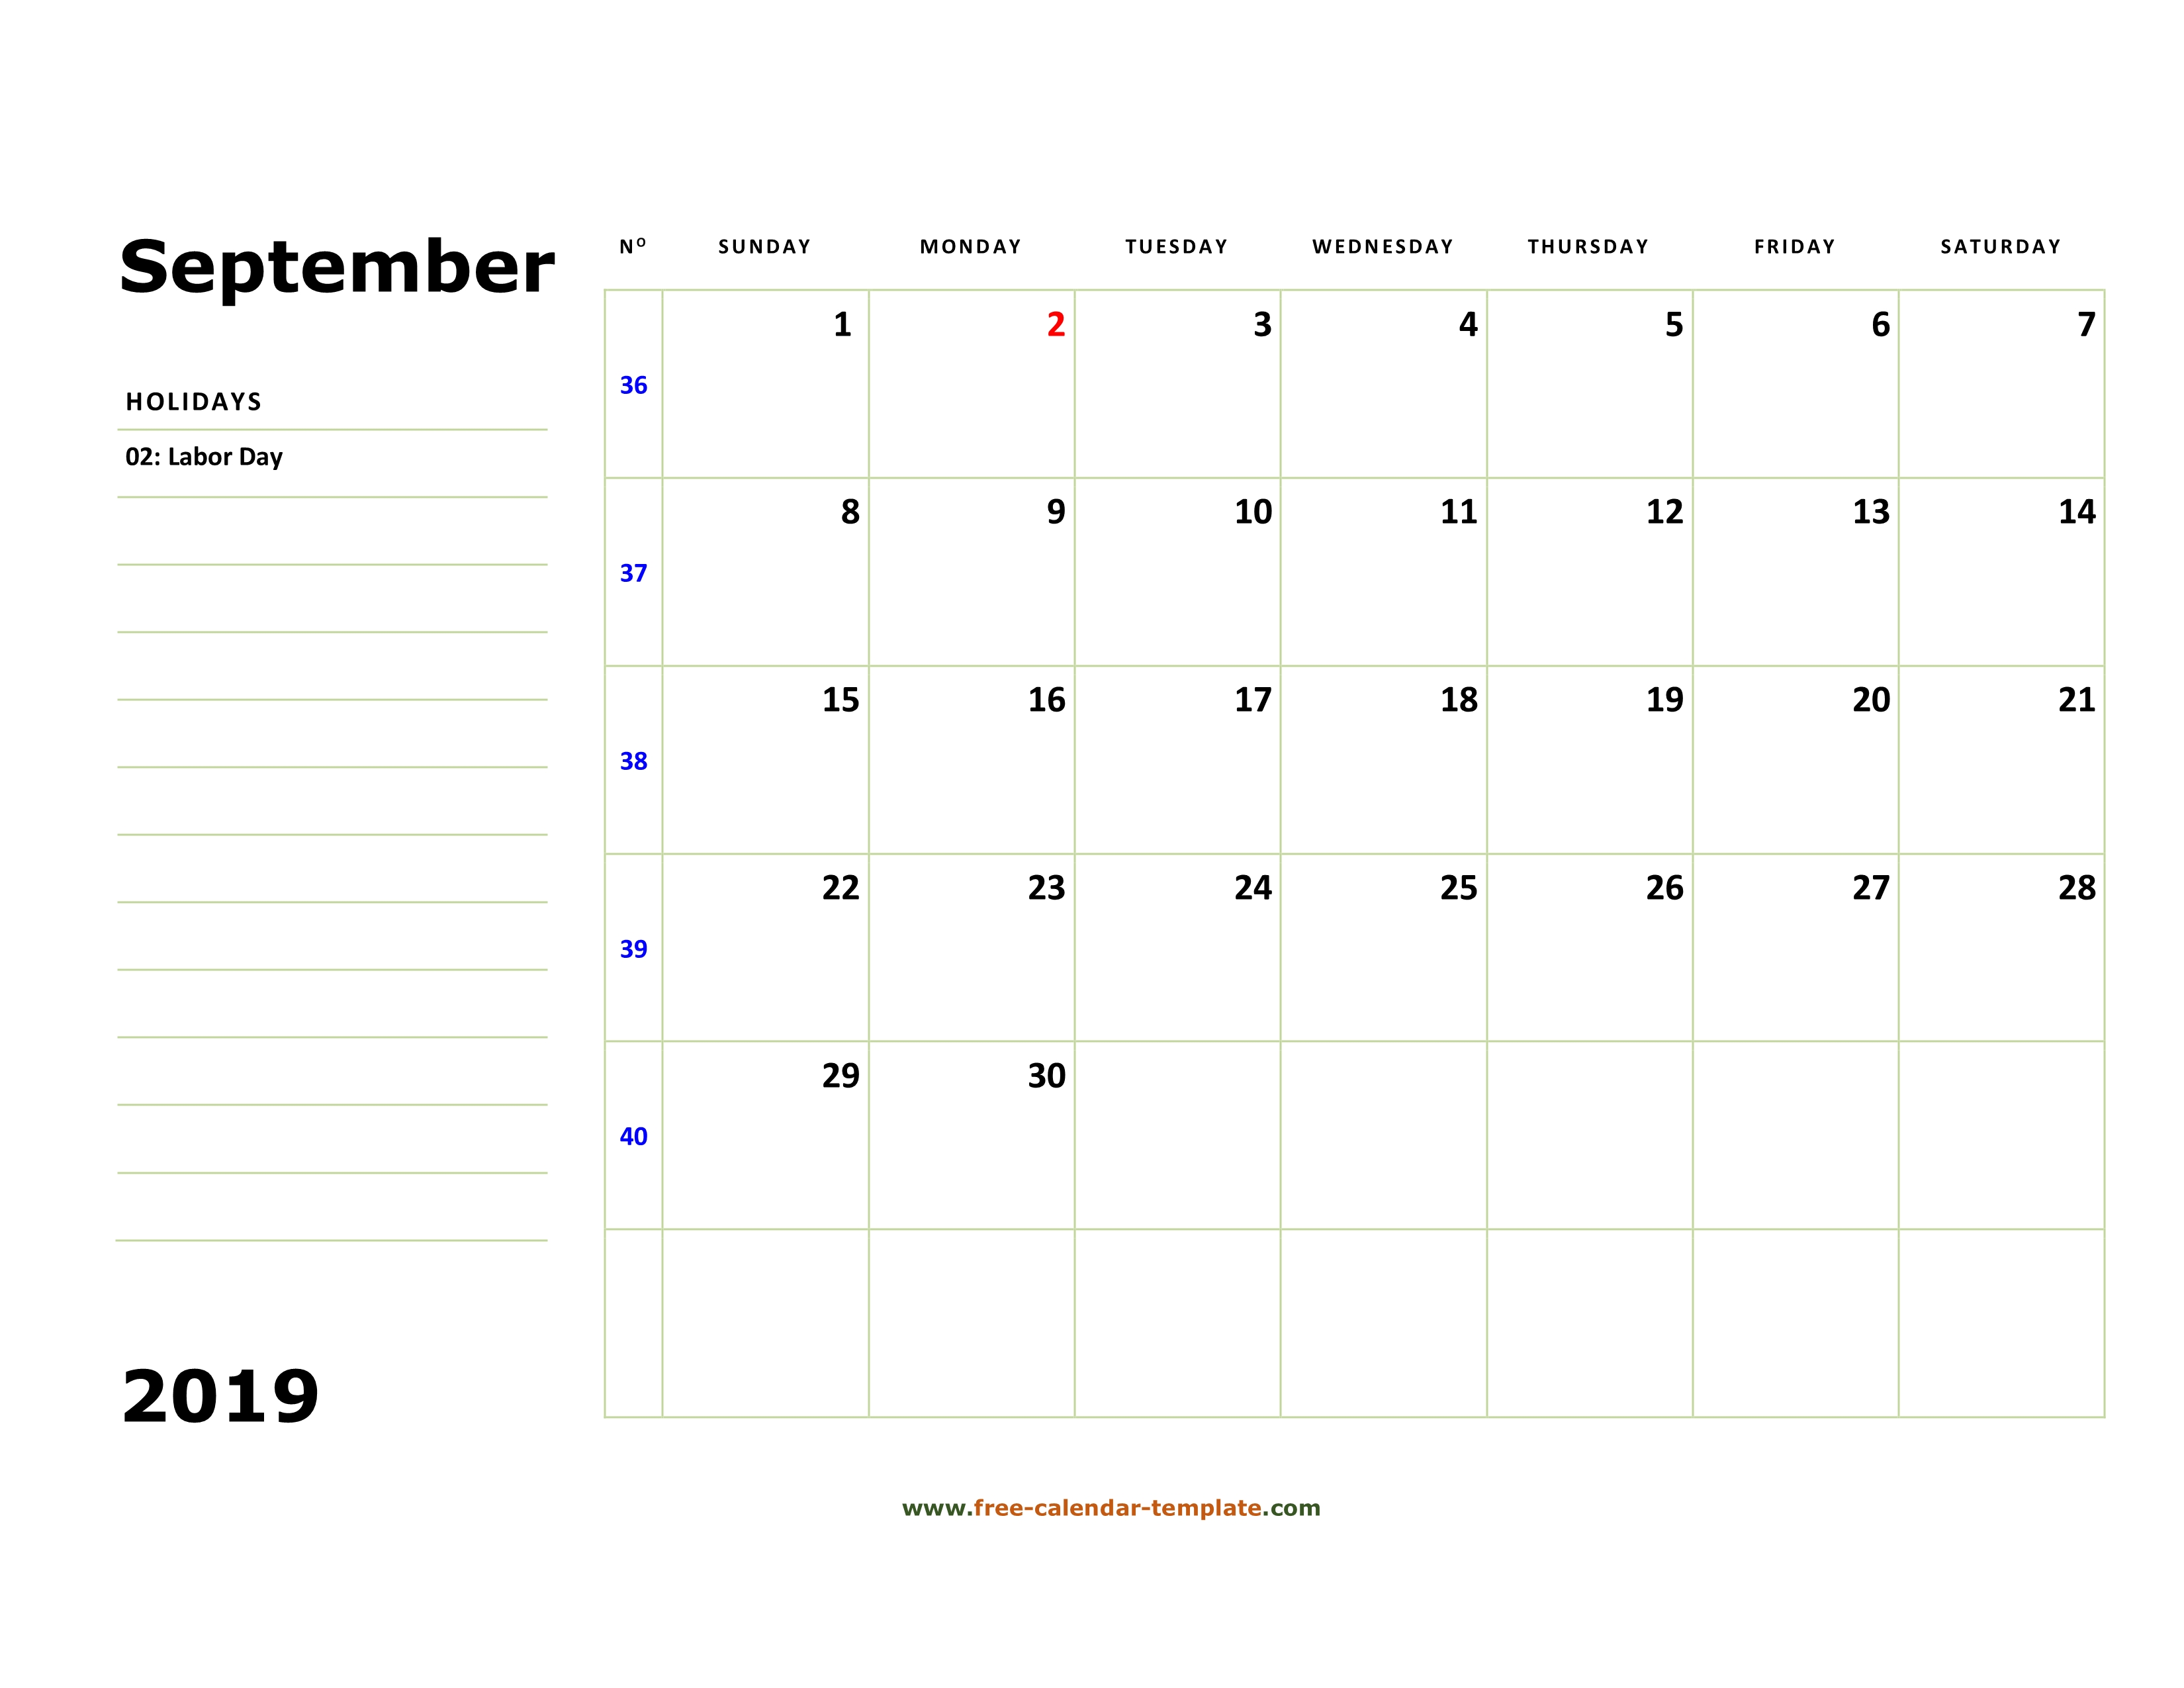 photo regarding Free Printable Oct Calendar called Printable September 2019 Calendar (box and strains for notes